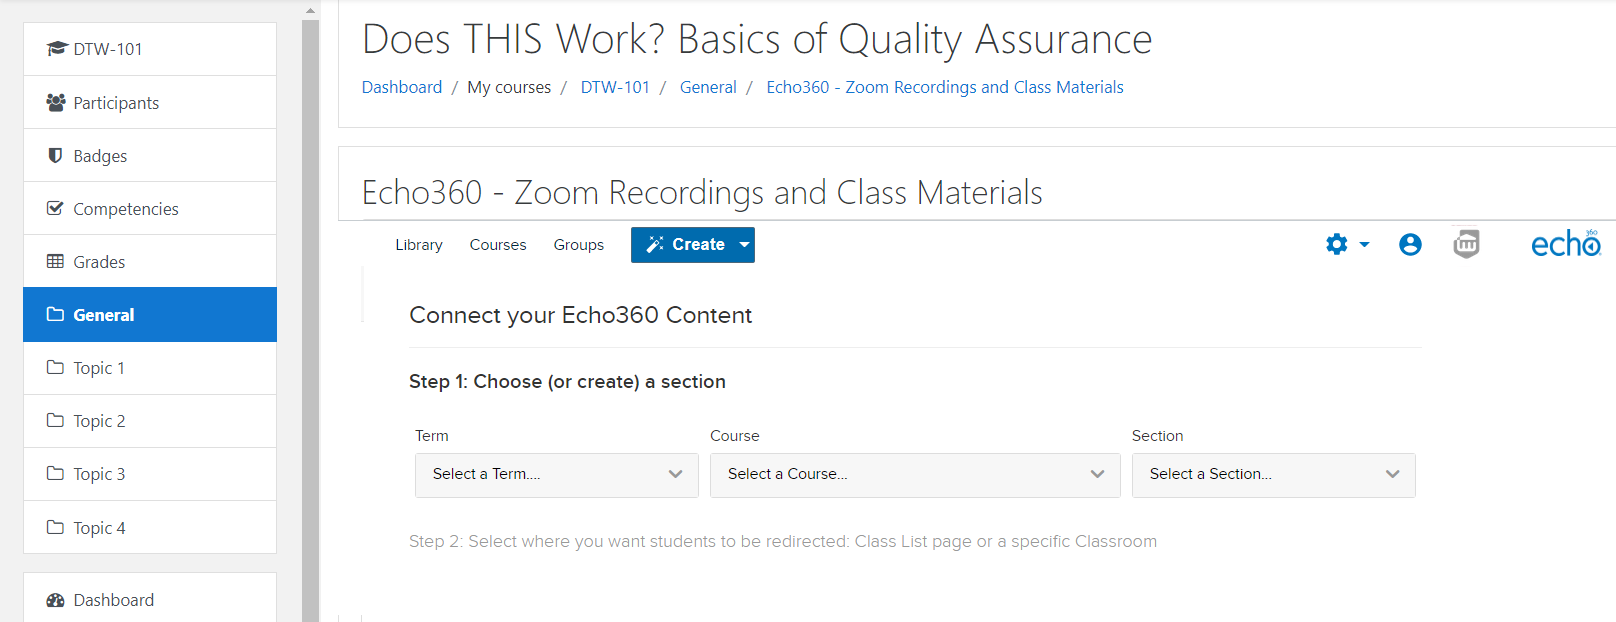 Moodle course after clicking the Echo360 link with mapping options to Echo360 for selection as described